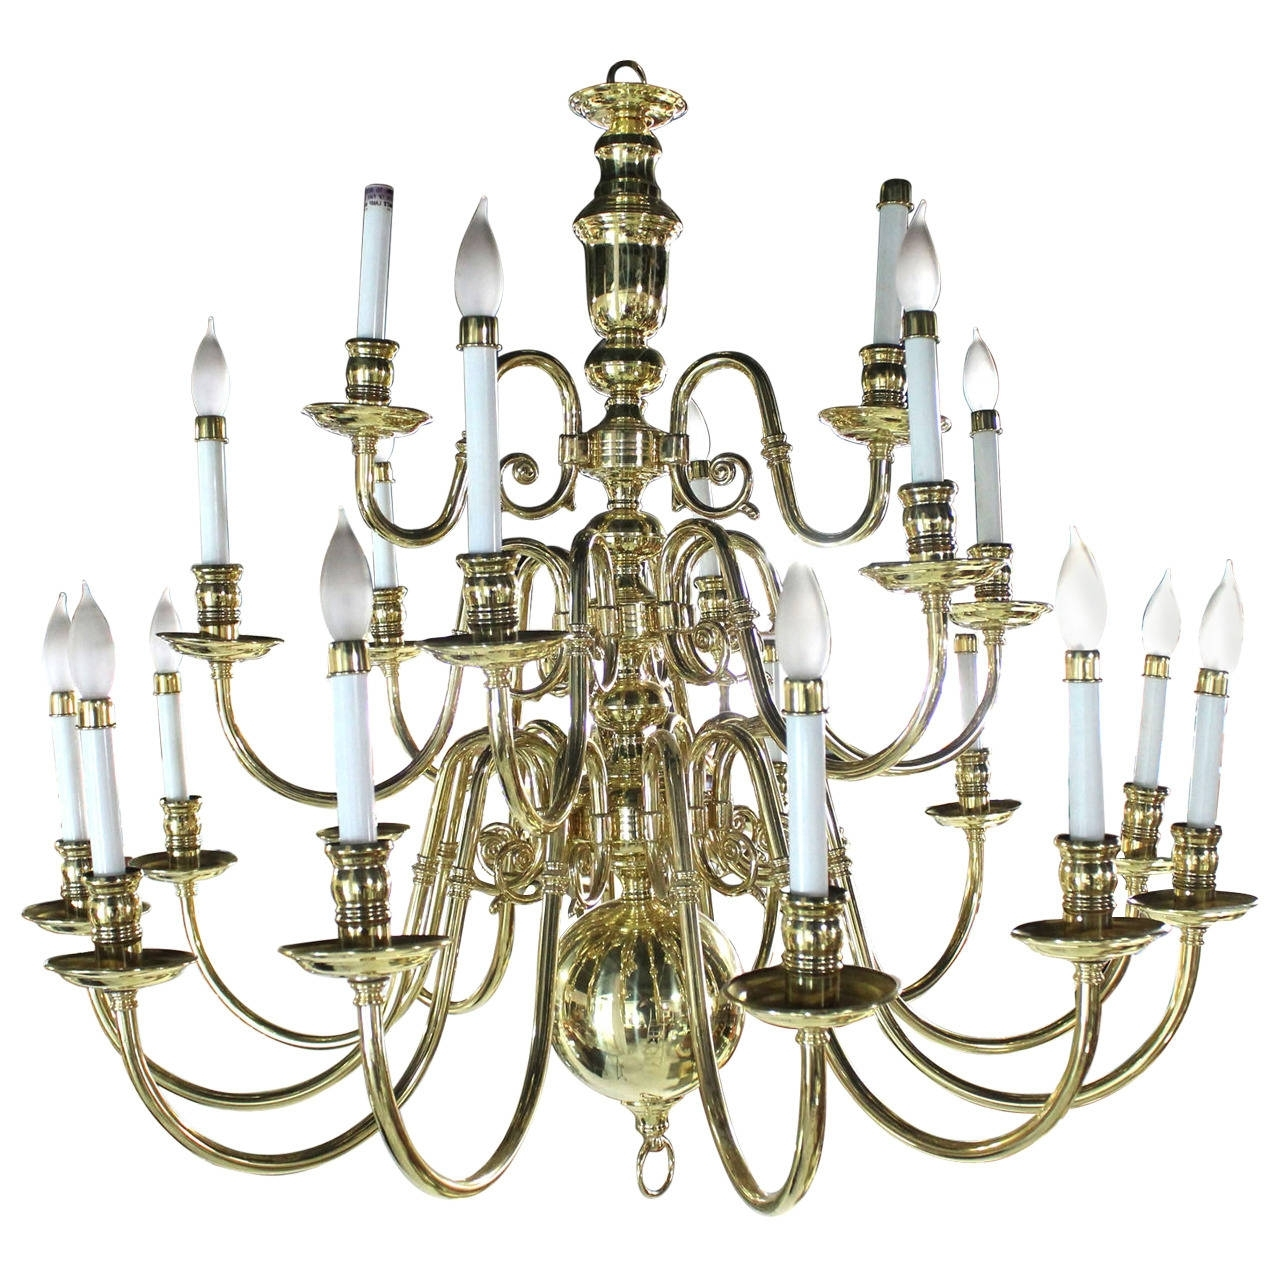 Vintage Brass Chandeliers With Most Up To Date Large Vintage Brass Candelabra Chandelier For Sale At 1stdibs (View 19 of 20)